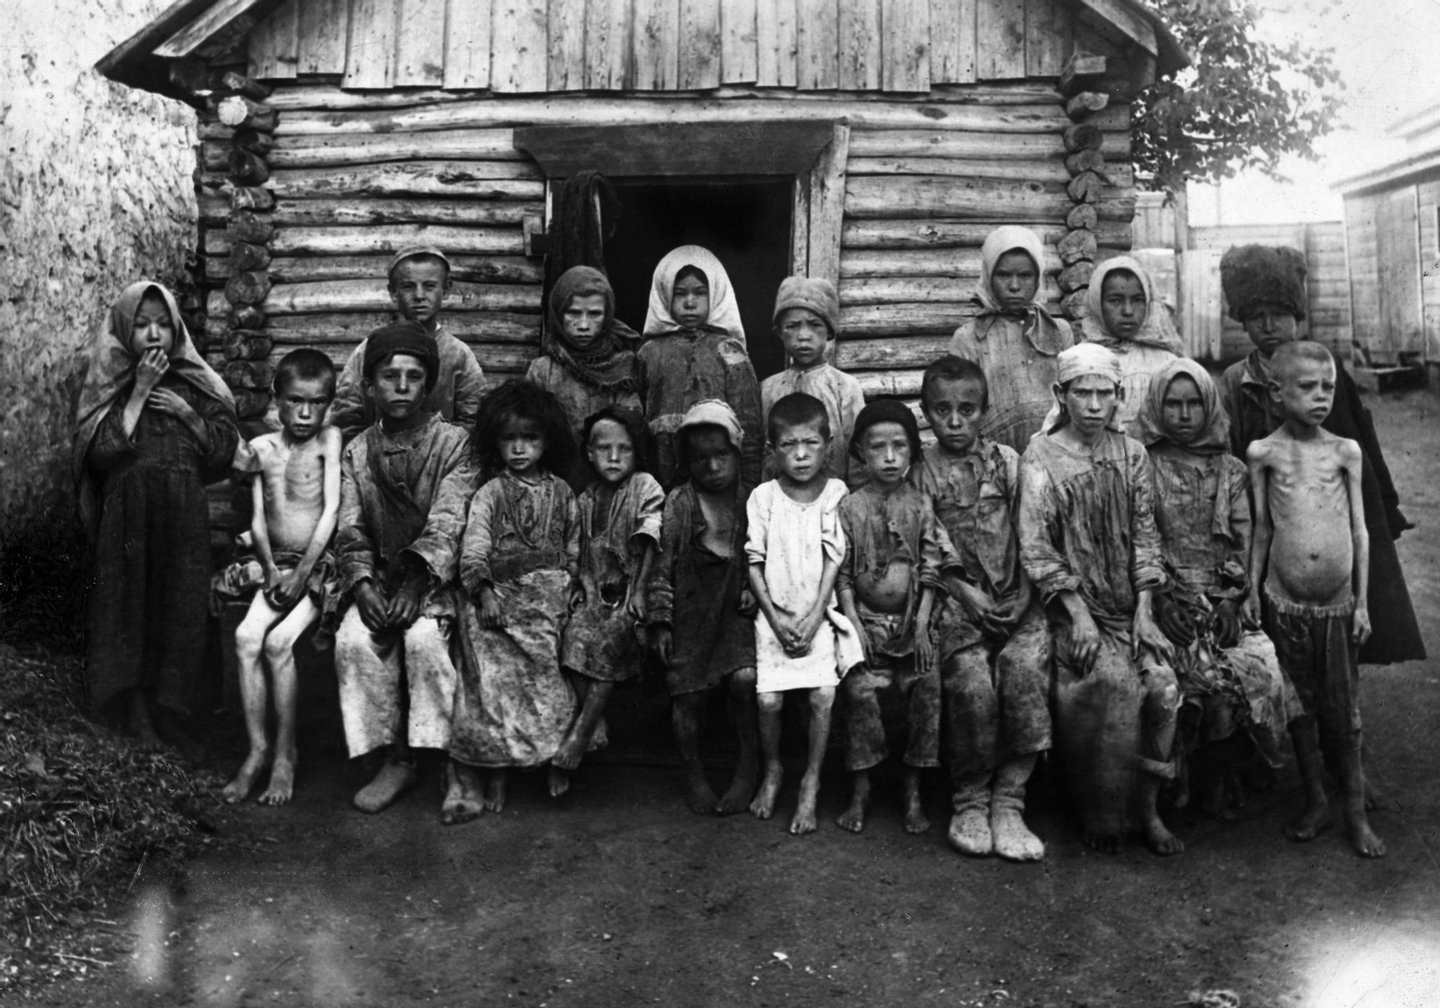 October 1921: Famine-stricken refugee children in Russia during the Russian Civil War. (Photo by Topical Press Agency/Getty Images)